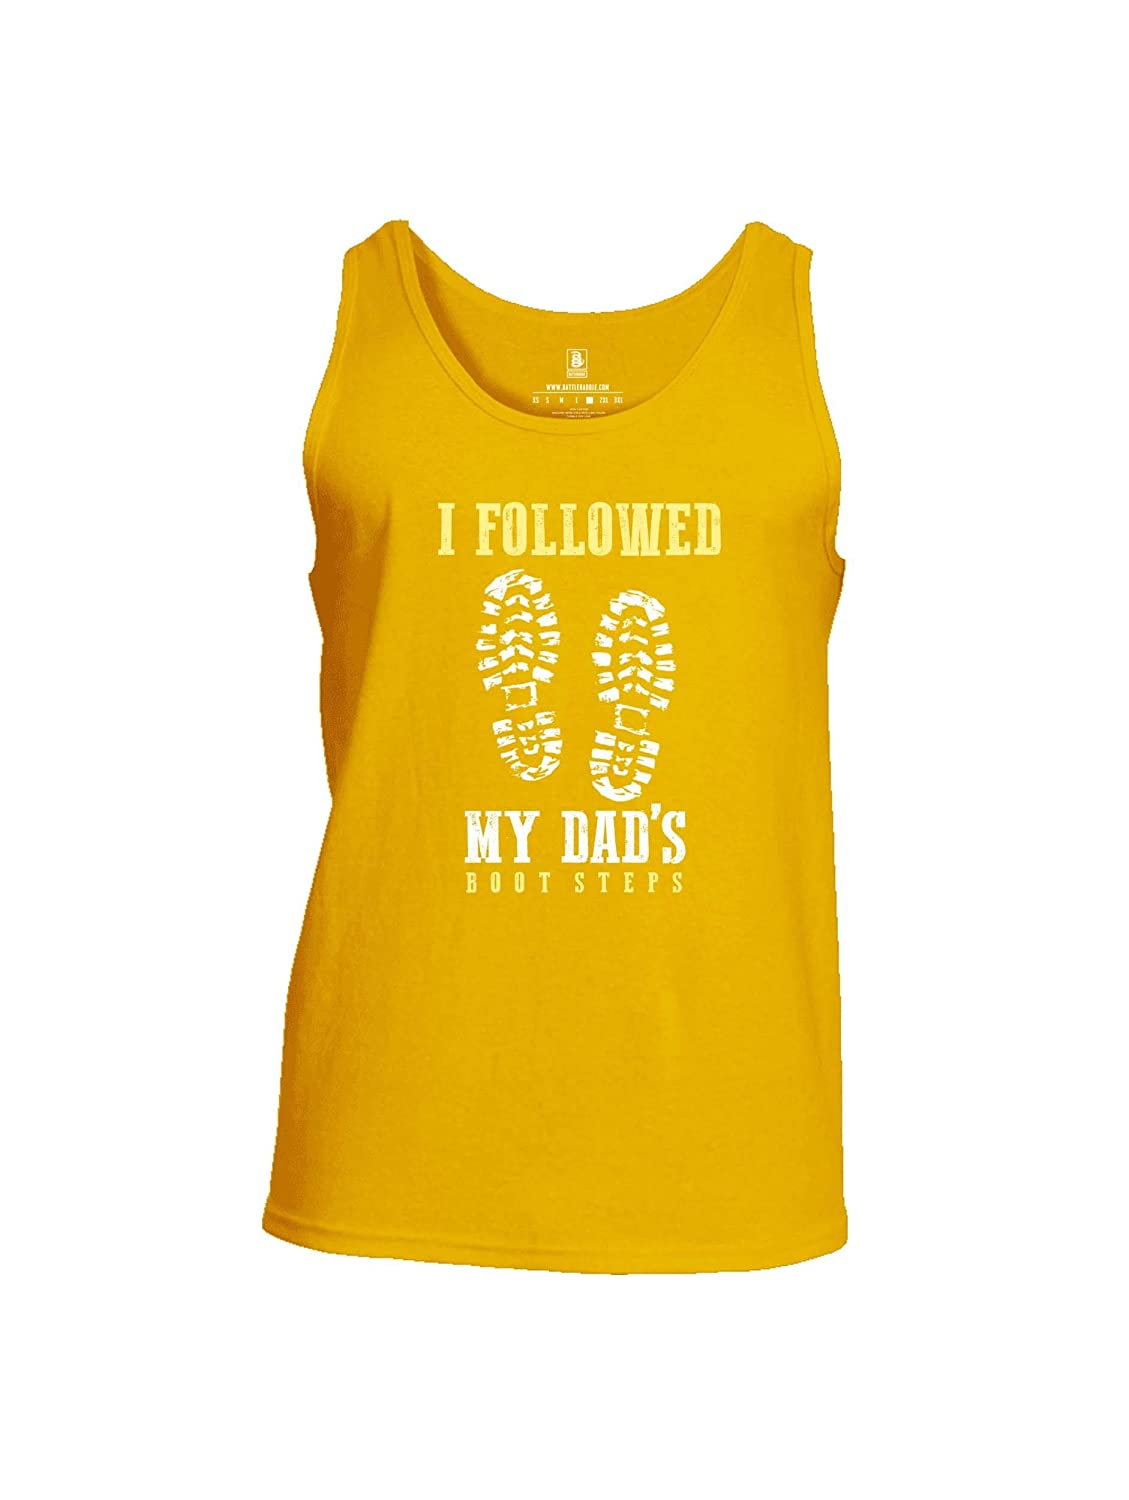 Battleraddle I Followed My Dads Boot Steps Mens Cotton Tank Top